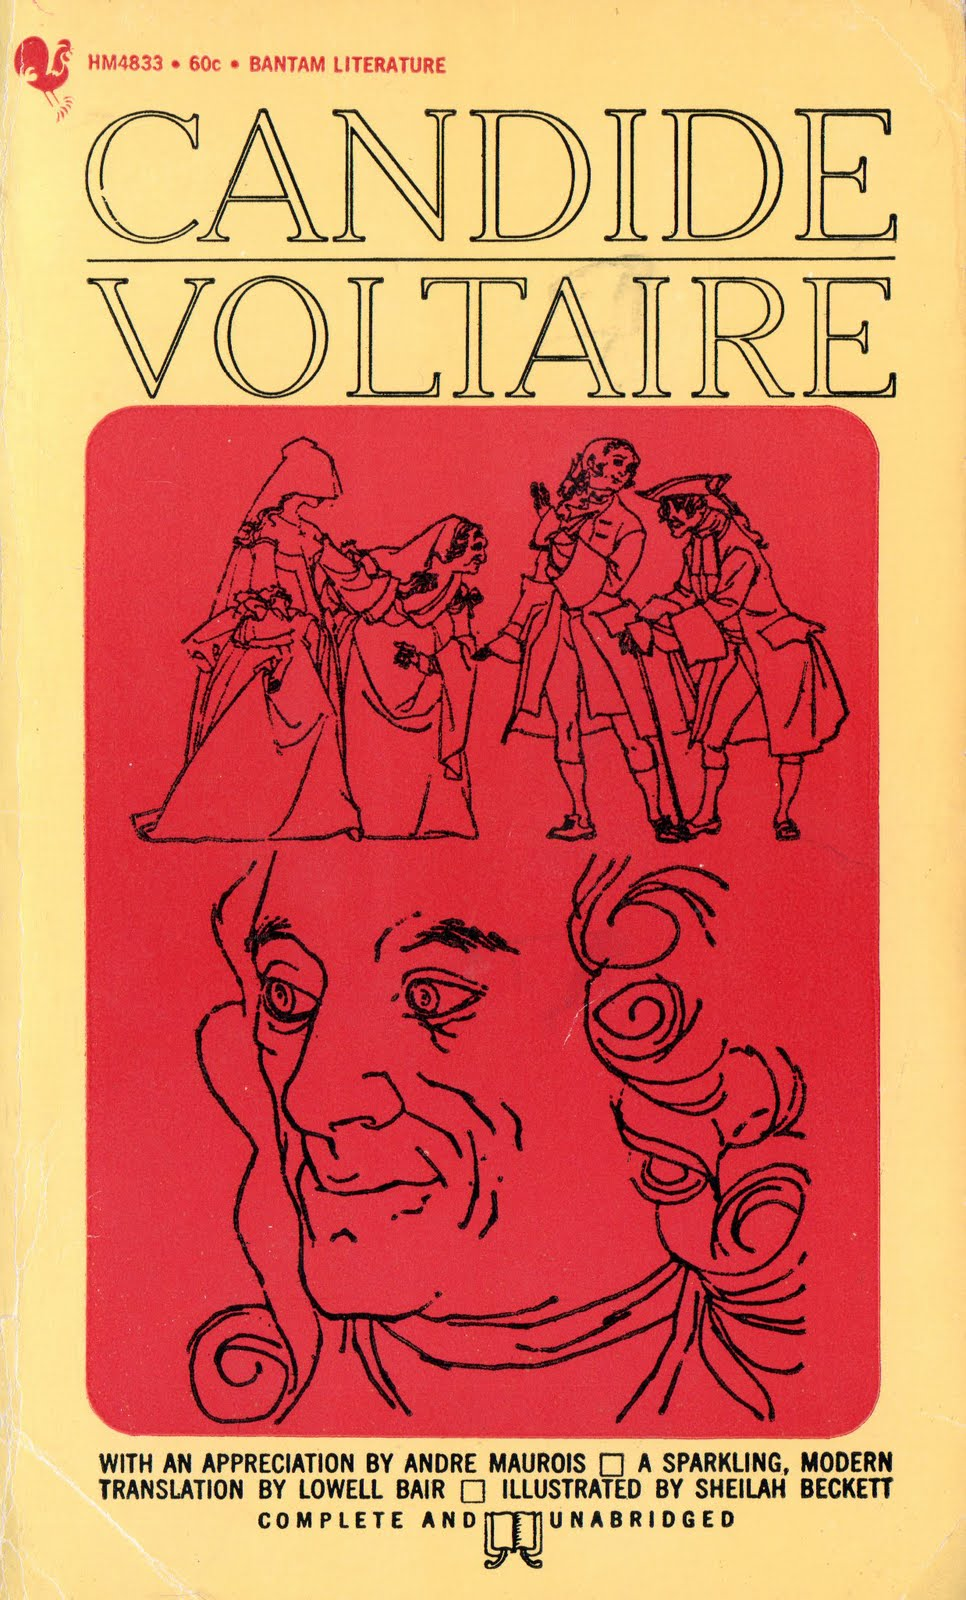 an analysis of the satire in candide a book by voltaire Literary analysis of candide by voltaire candide: ou, l'optimisme (1759) is one of the renown works and later works by voltaire the literary piece is acknowledged as one of the author's most insightful spoofs on the world's state.